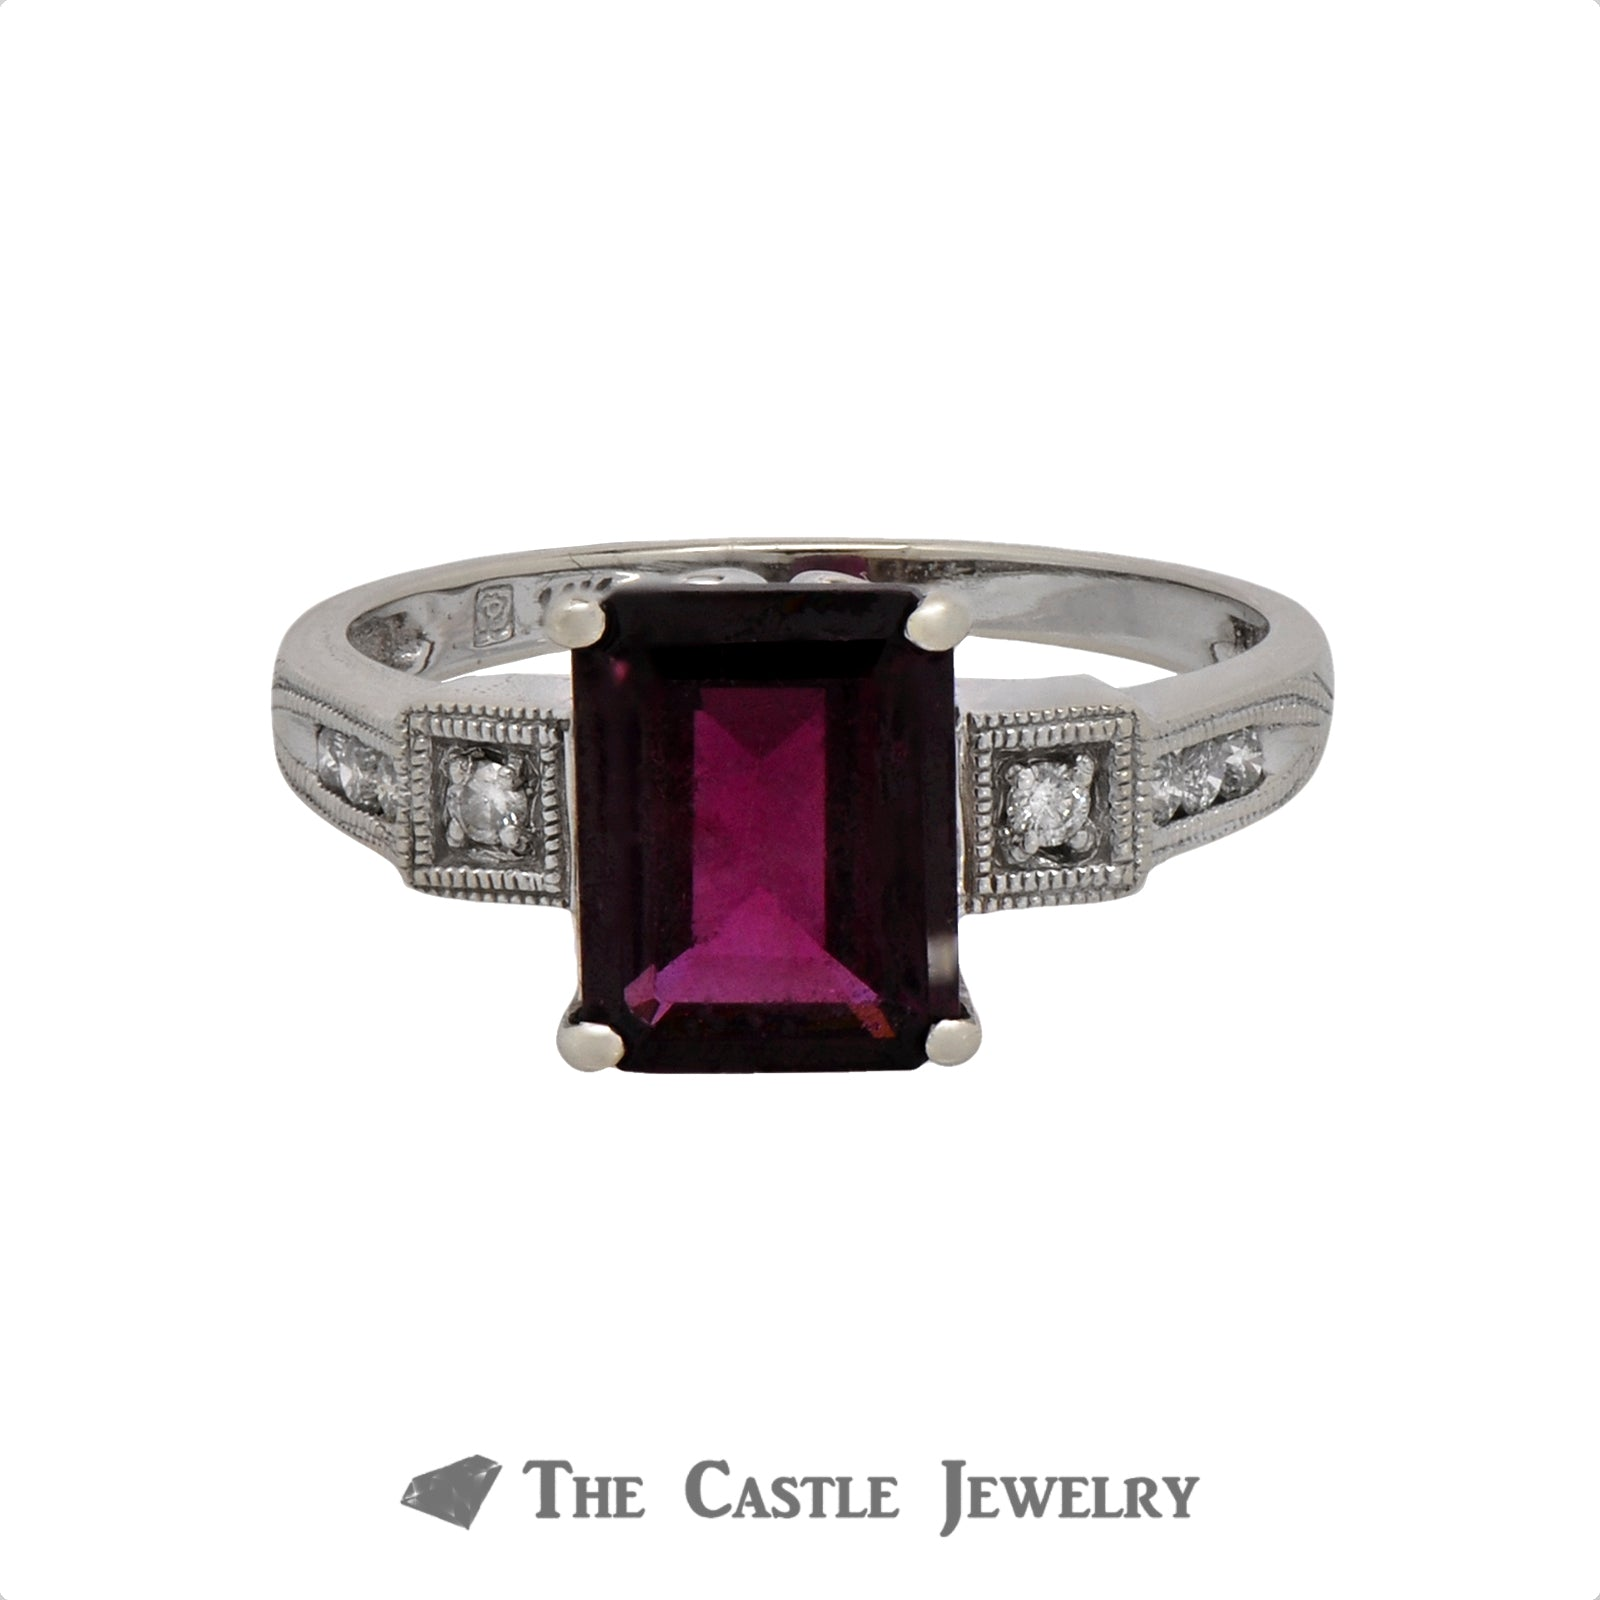 Emerald Cut Rhodolite Garnet Ring with .12cttw Diamond Accents in 14k White Gold